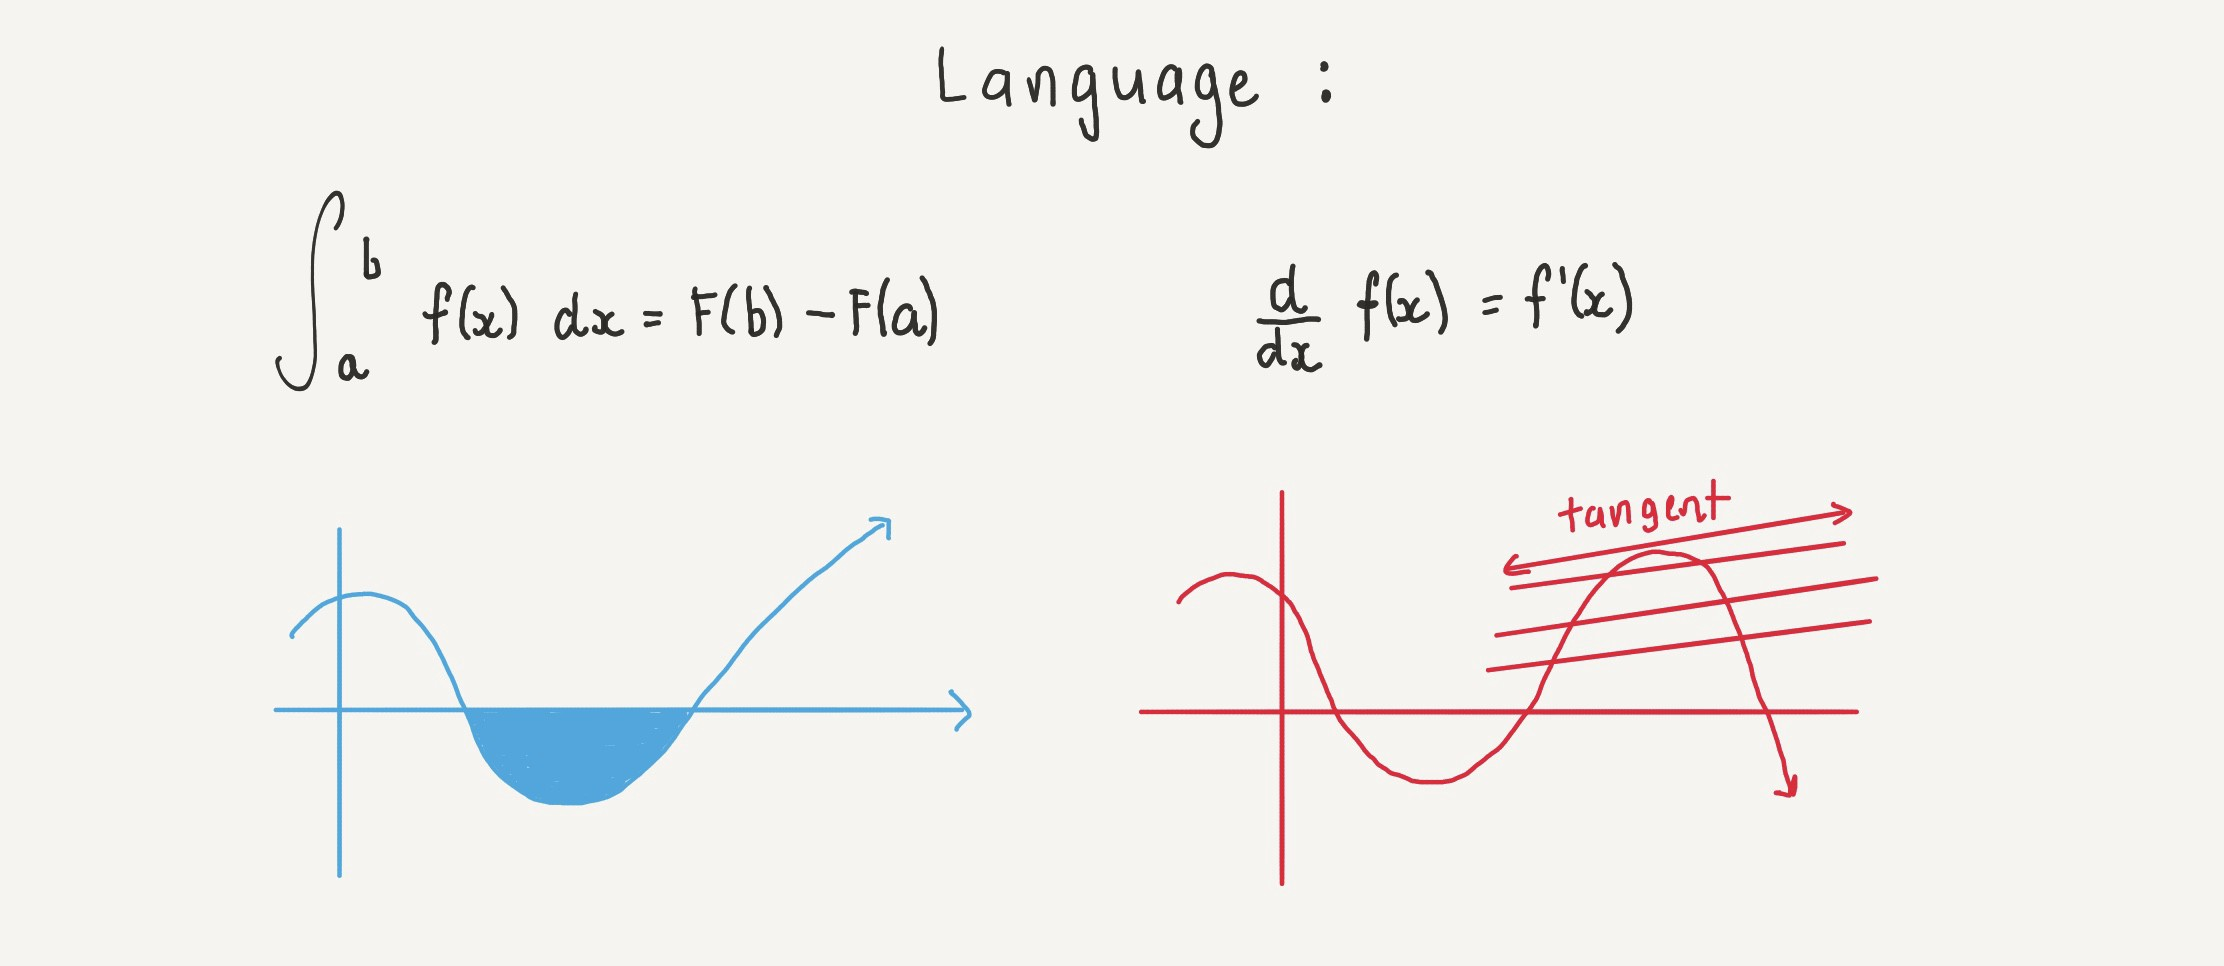 Applications of Calculus in Real life - However, Mathematics